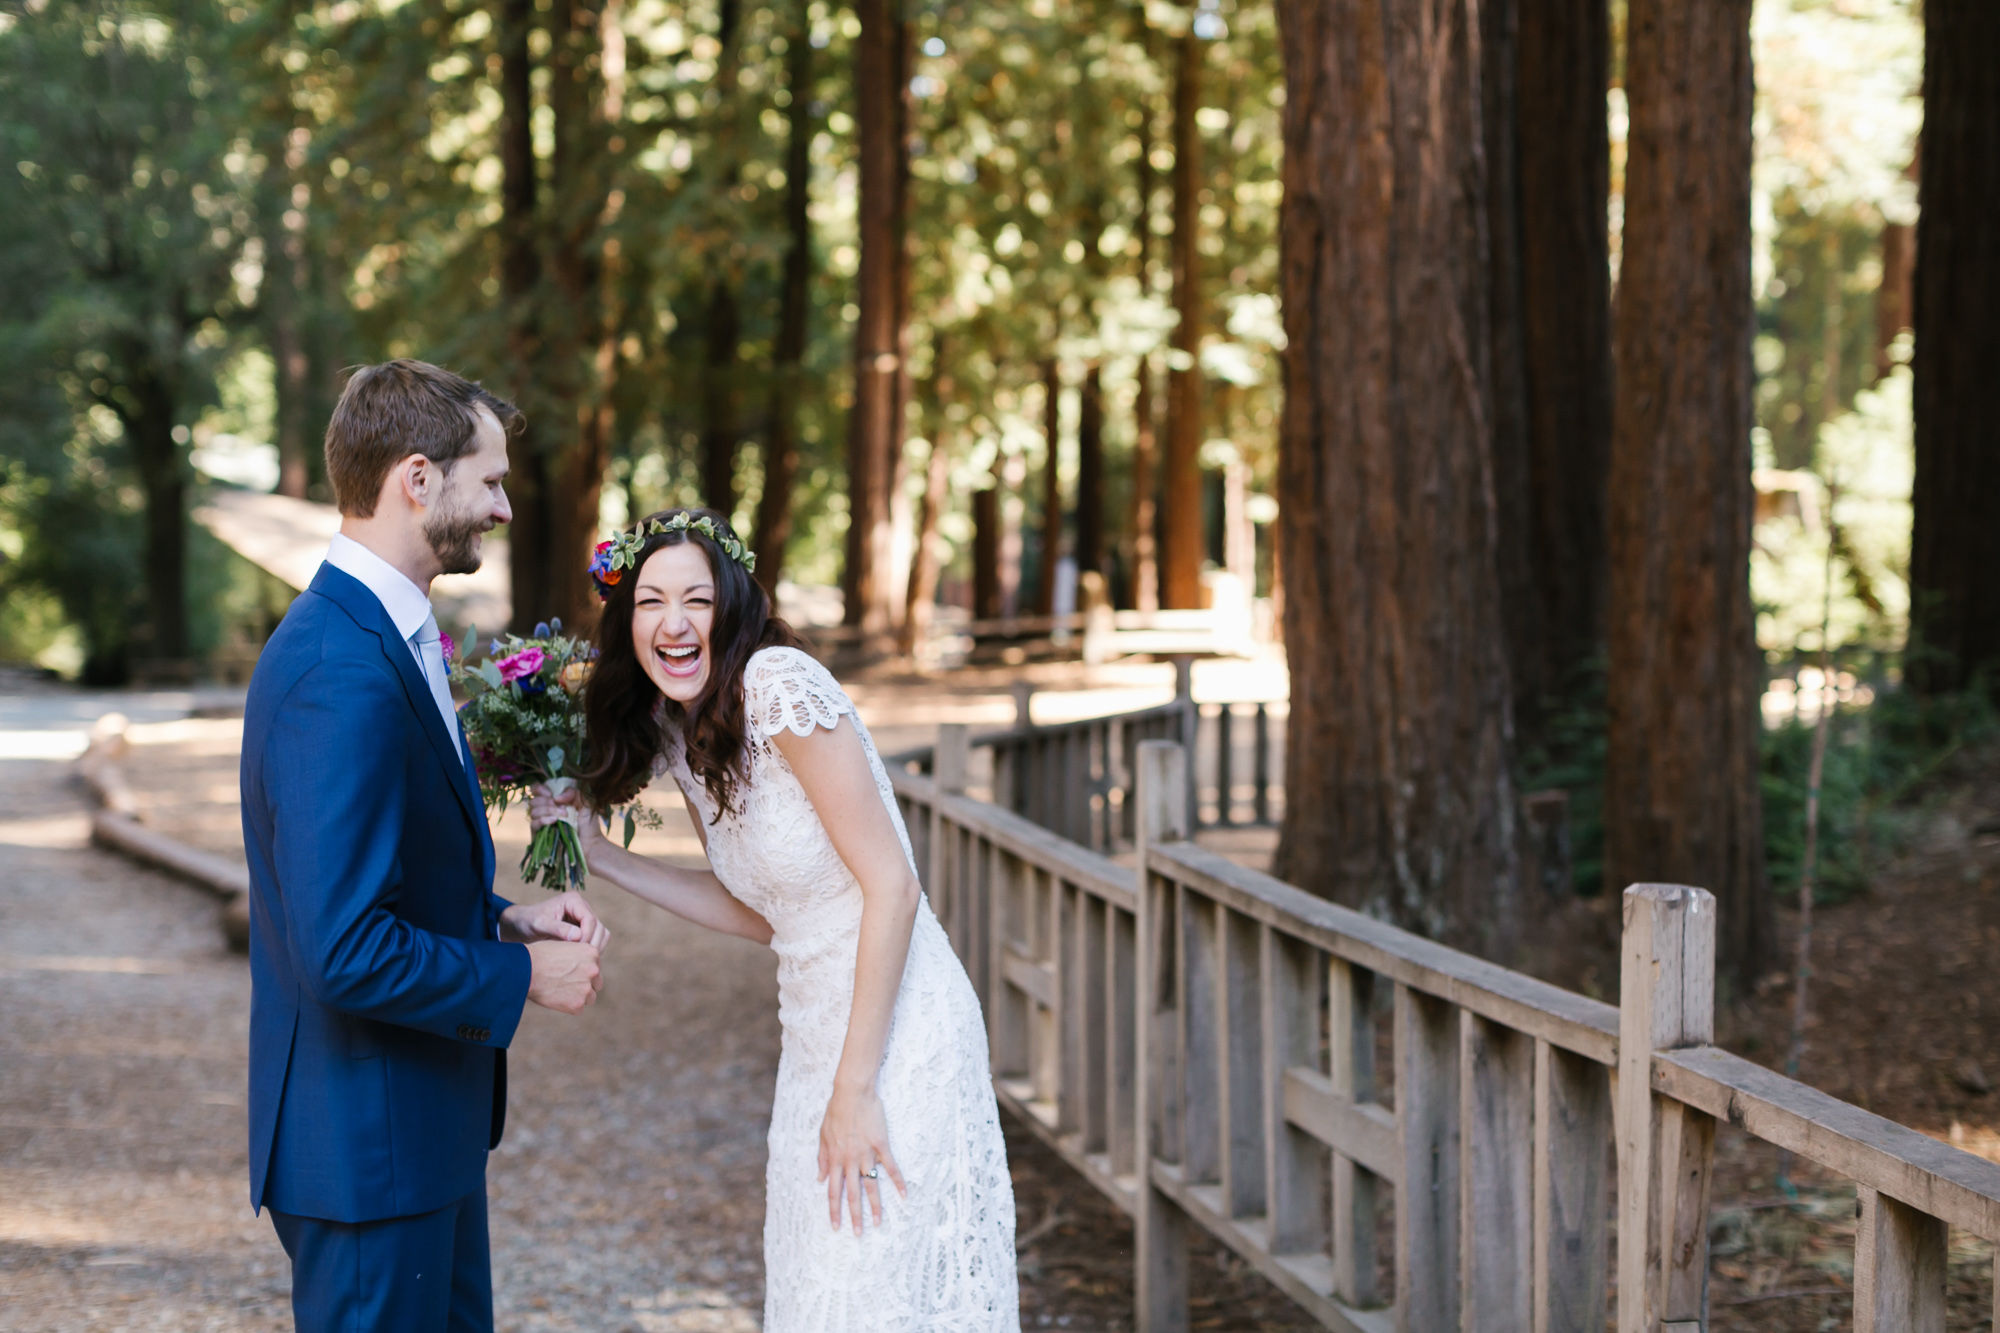 Bride with colorful flowers laughs with joy after her wedding ceremony